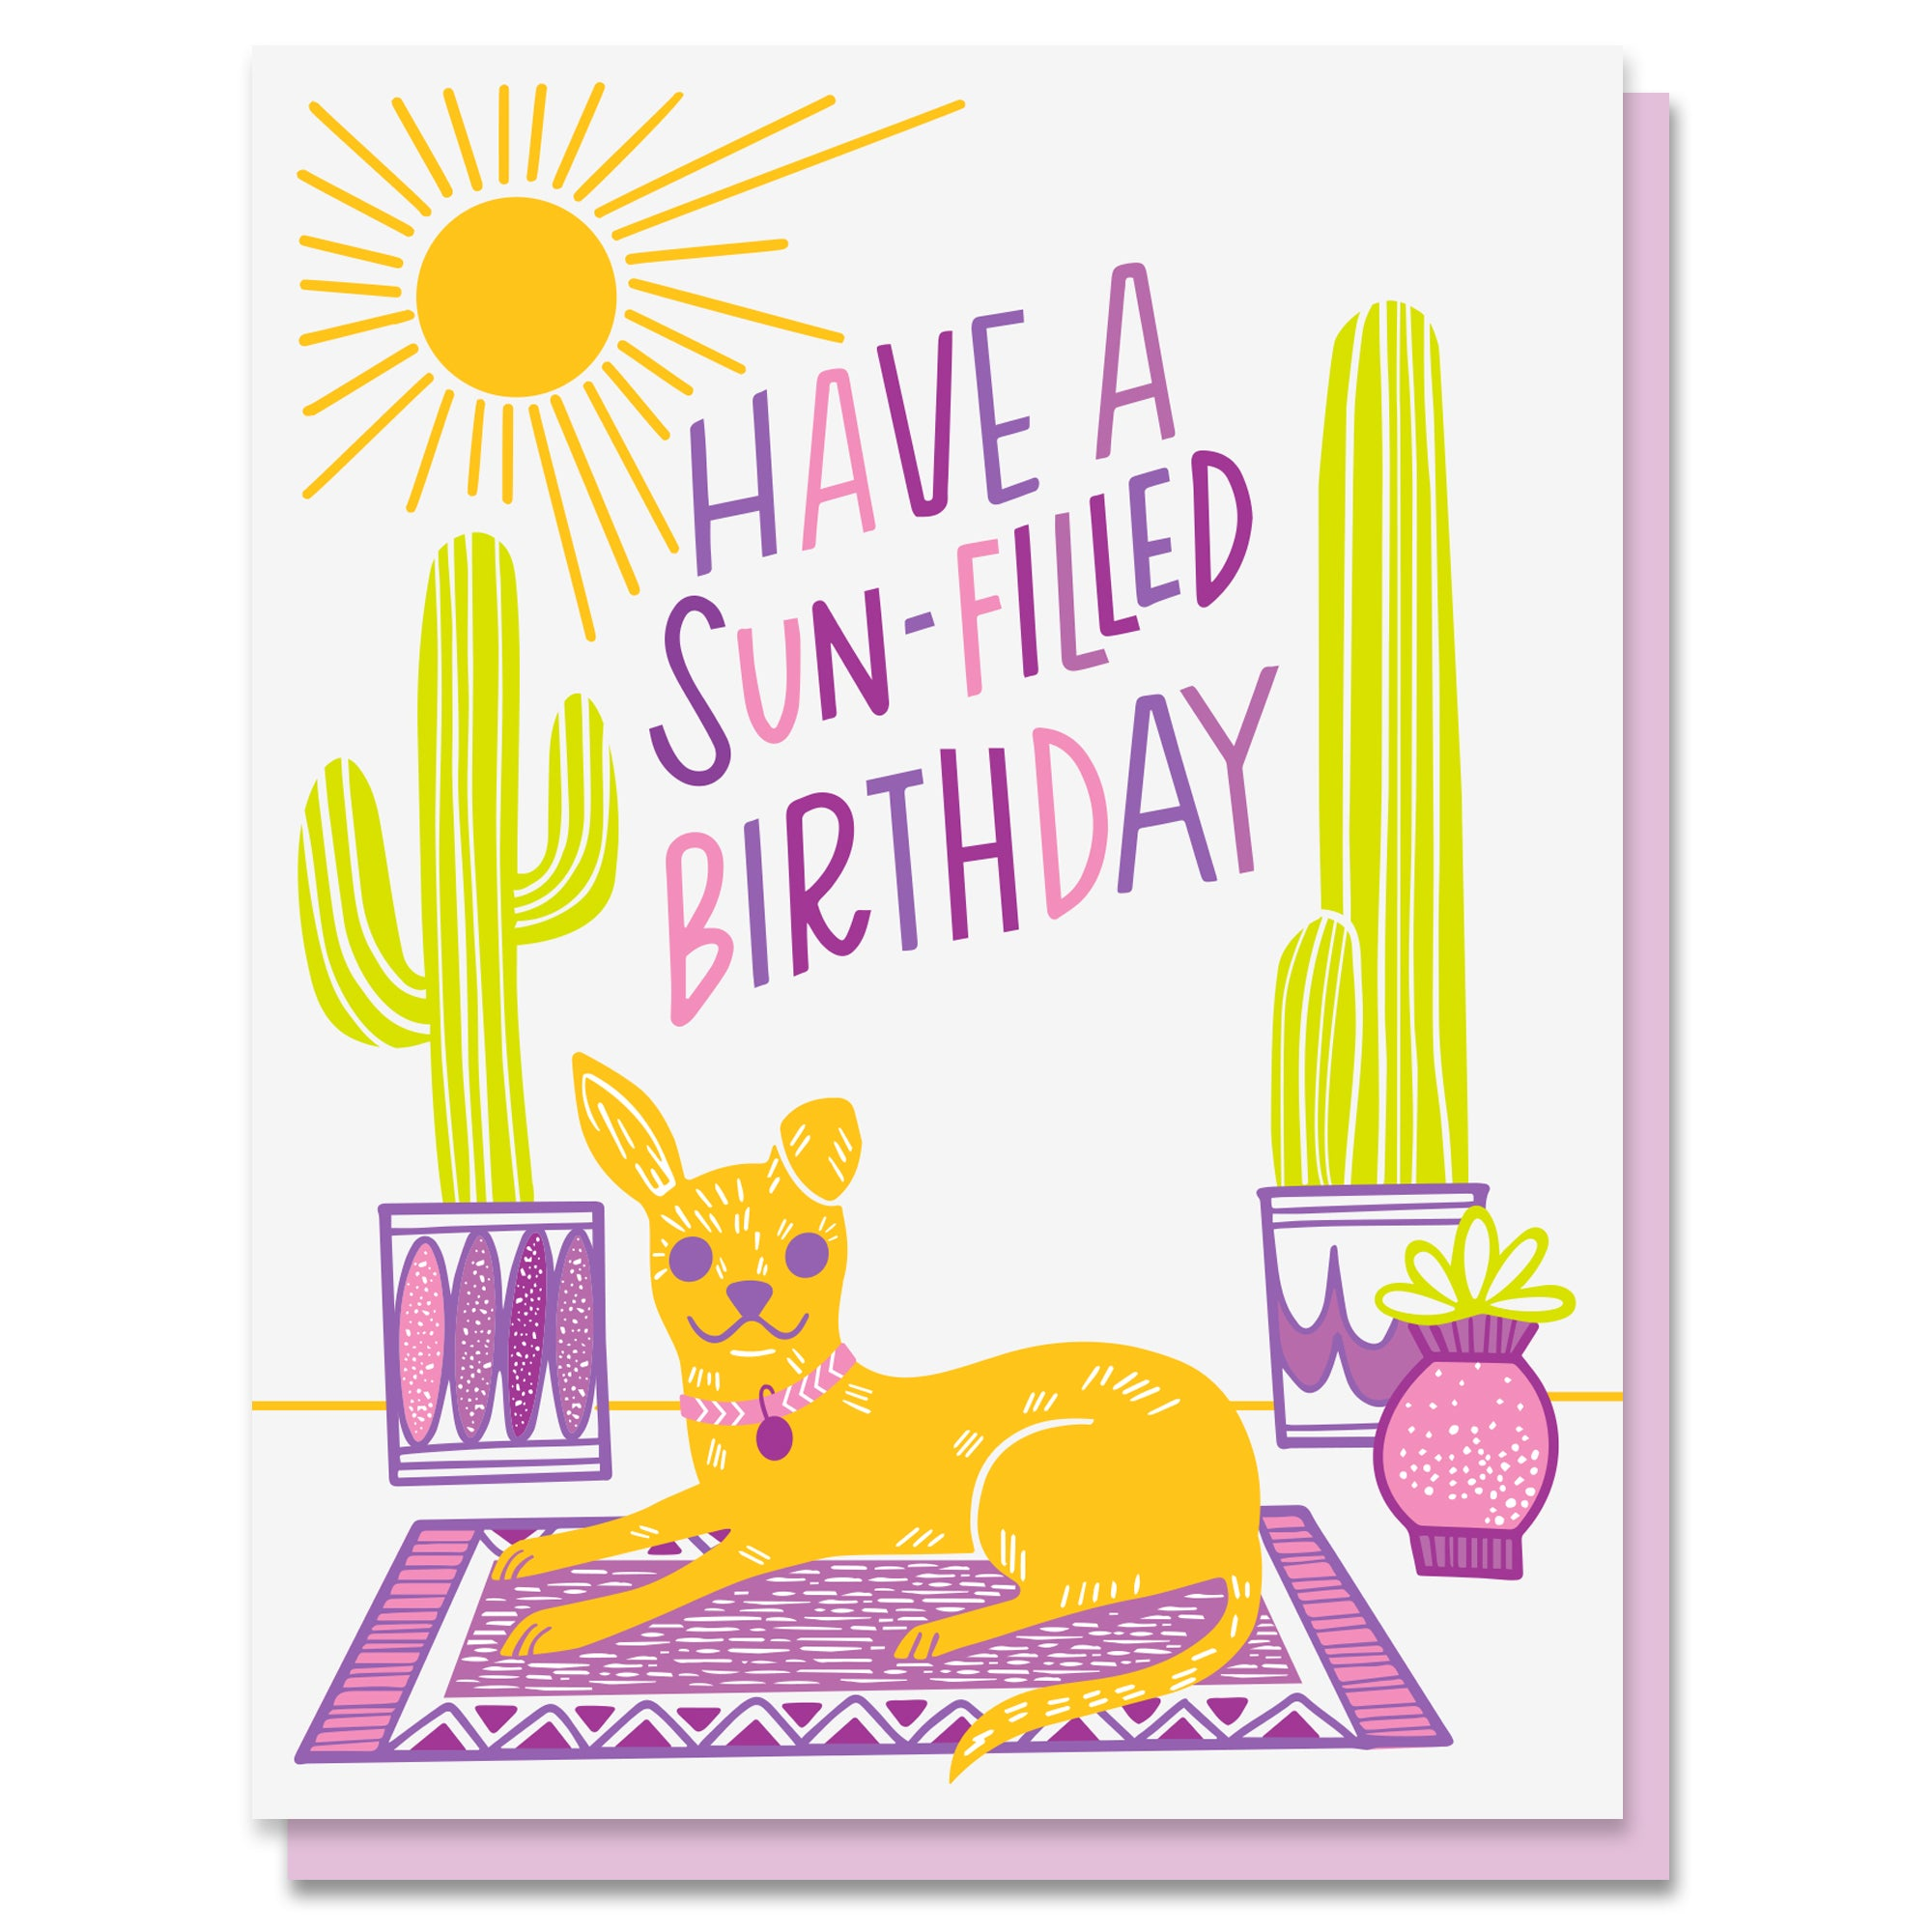 Sun-Filled Birthday Card